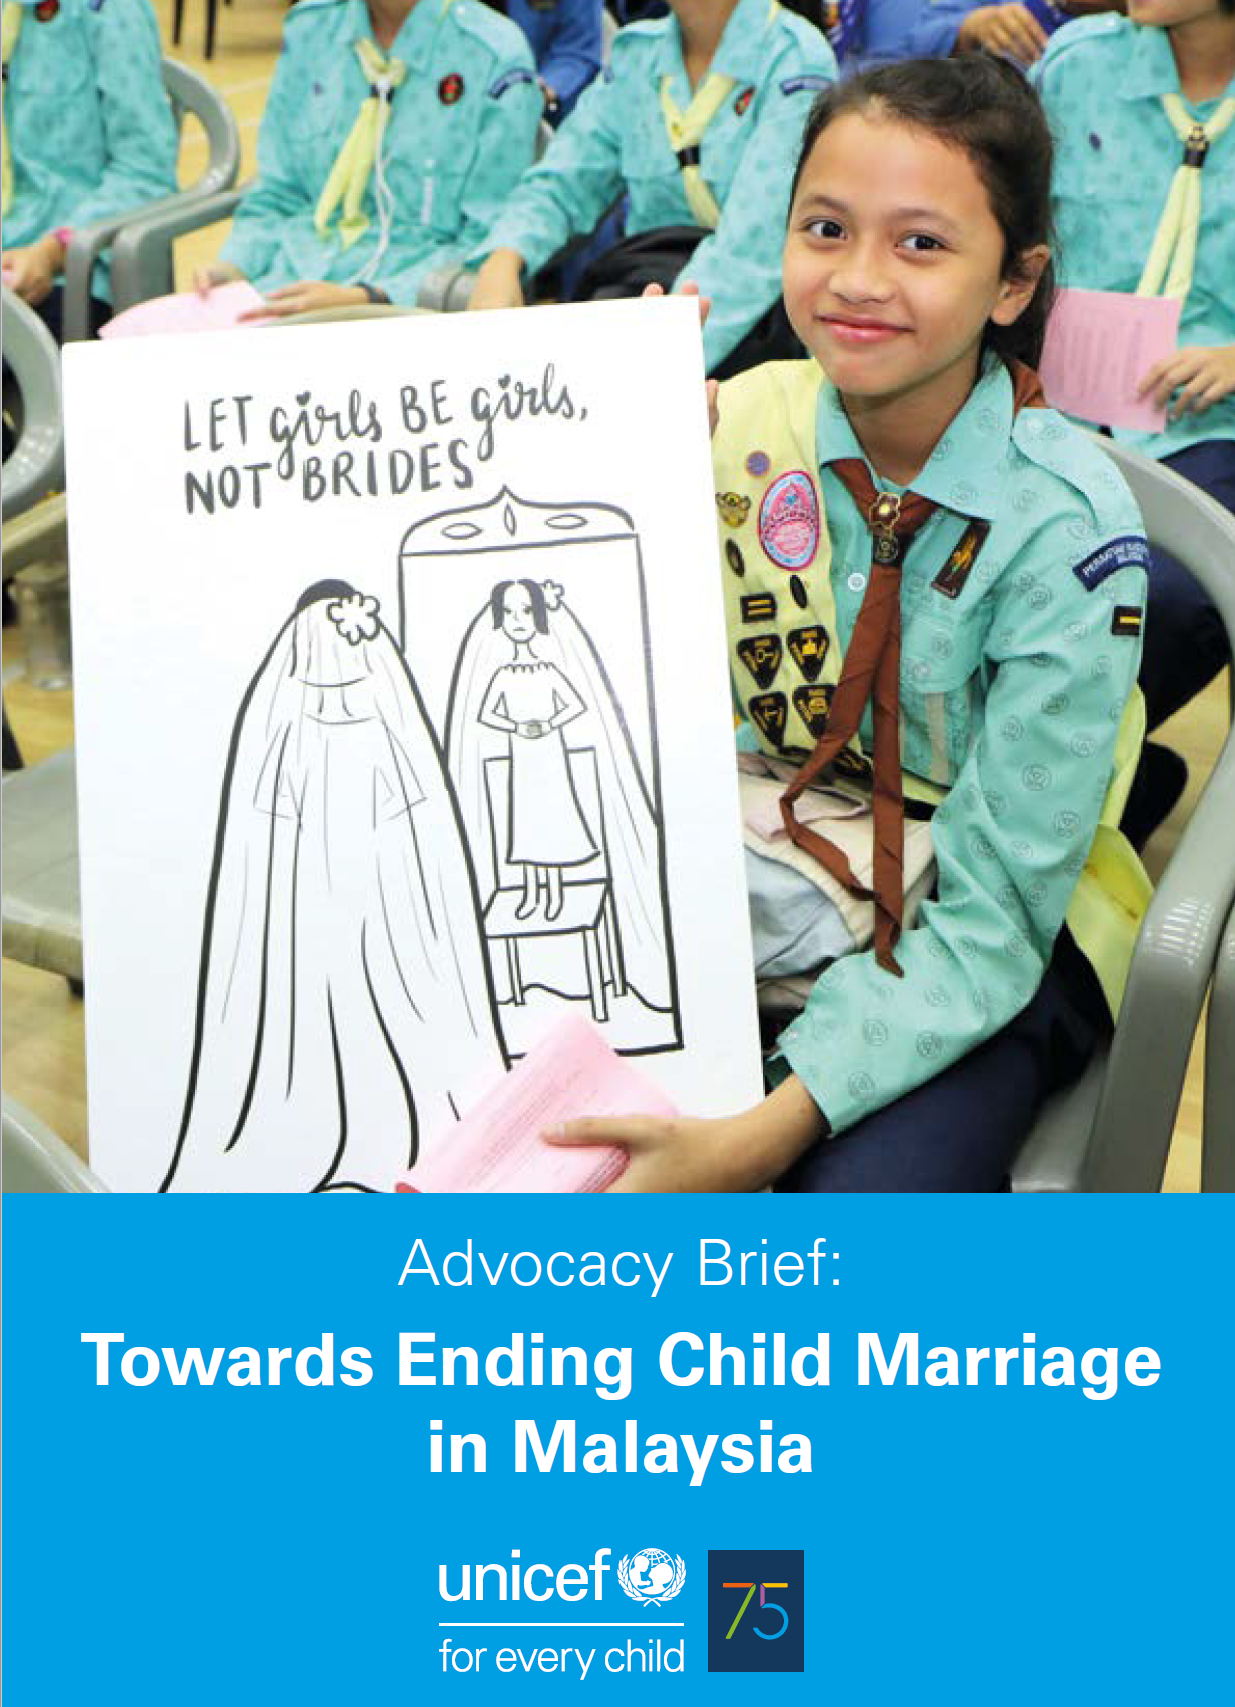 Towards ending child marriage in Malaysia